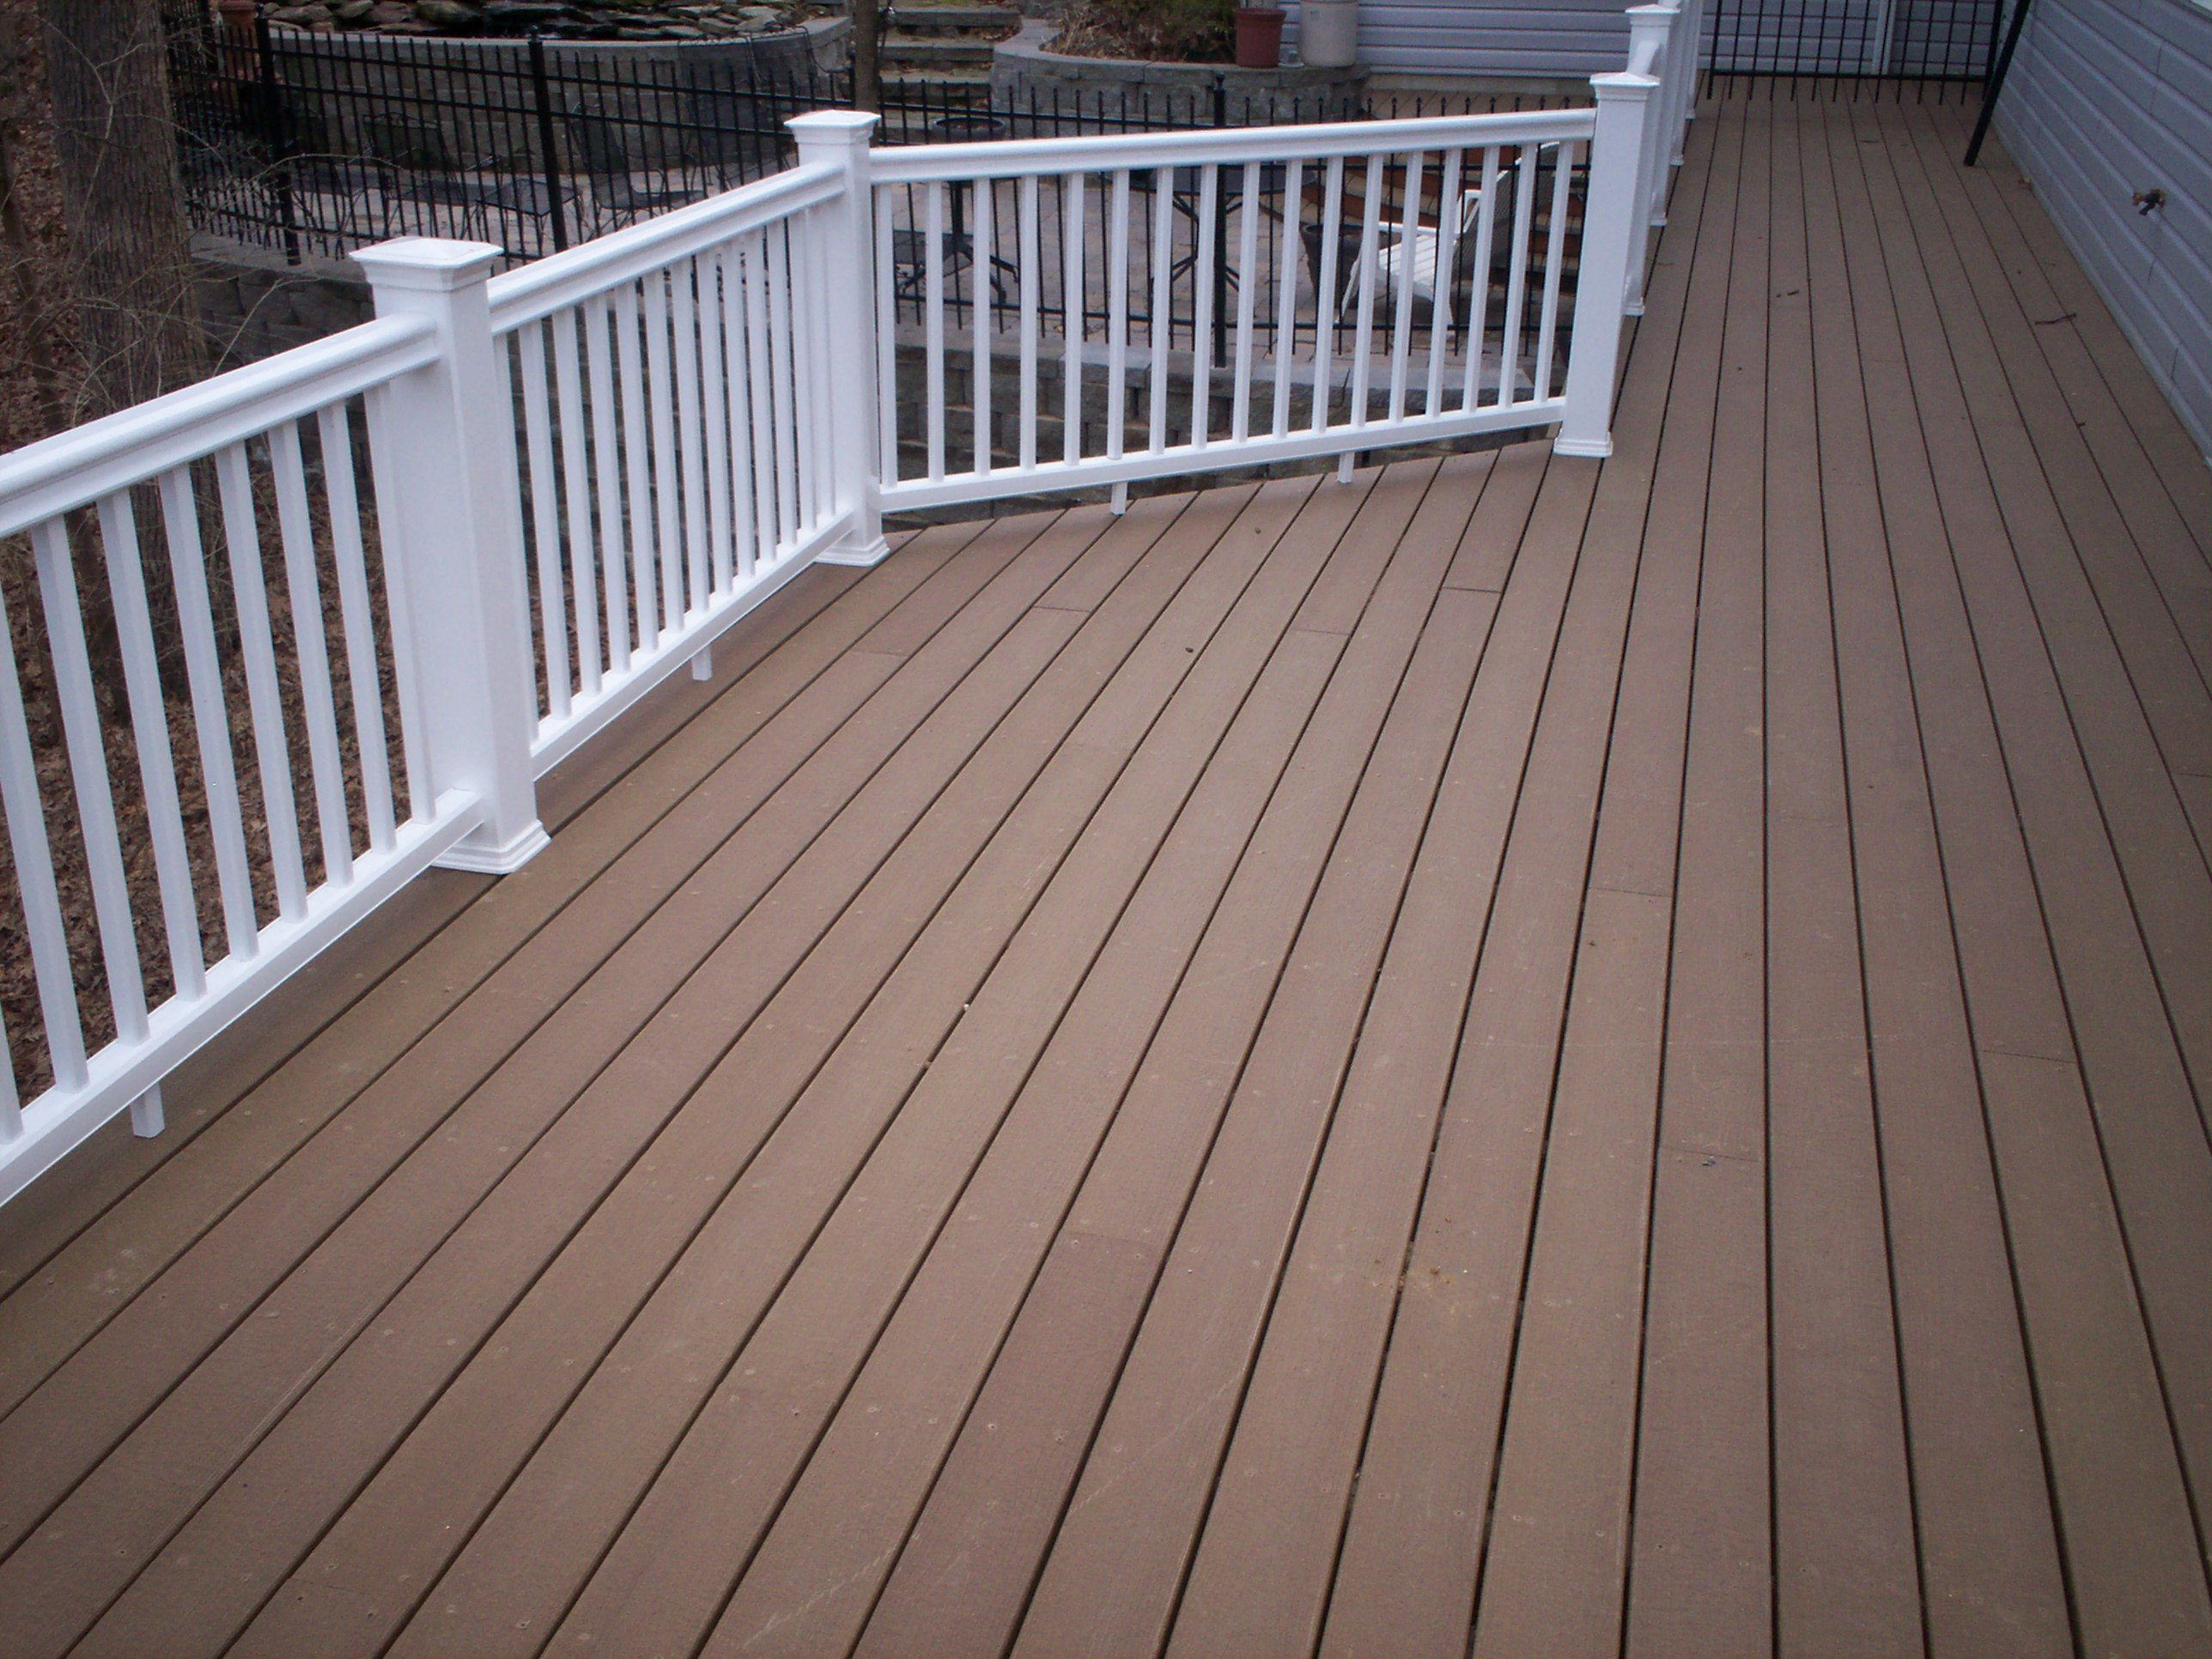 Best Material For Deck Of Decking Materials Best Composite Decking Material 2011